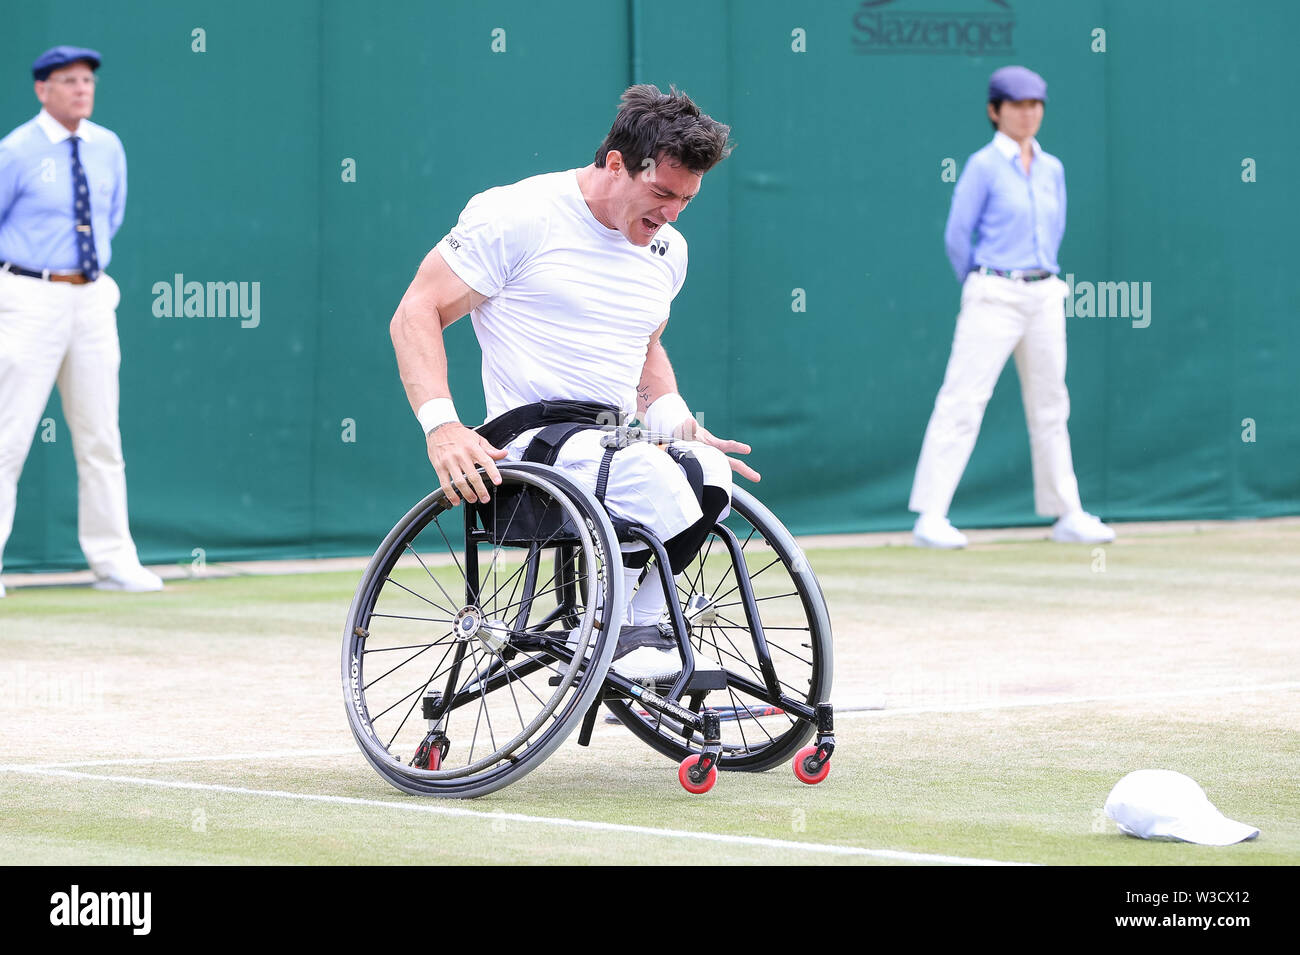 Wimbledon, London, UK. 14th July 2019. Gustavo Fernandez of Argentina celebrates after winning the men's wheelchair singles final match of the Wimbledon Lawn Tennis Championships against Shingo Kunieda of Japan at the All England Lawn Tennis and Croquet Club in London, England on July 14, 2019. Credit: AFLO/Alamy Live News - Stock Image